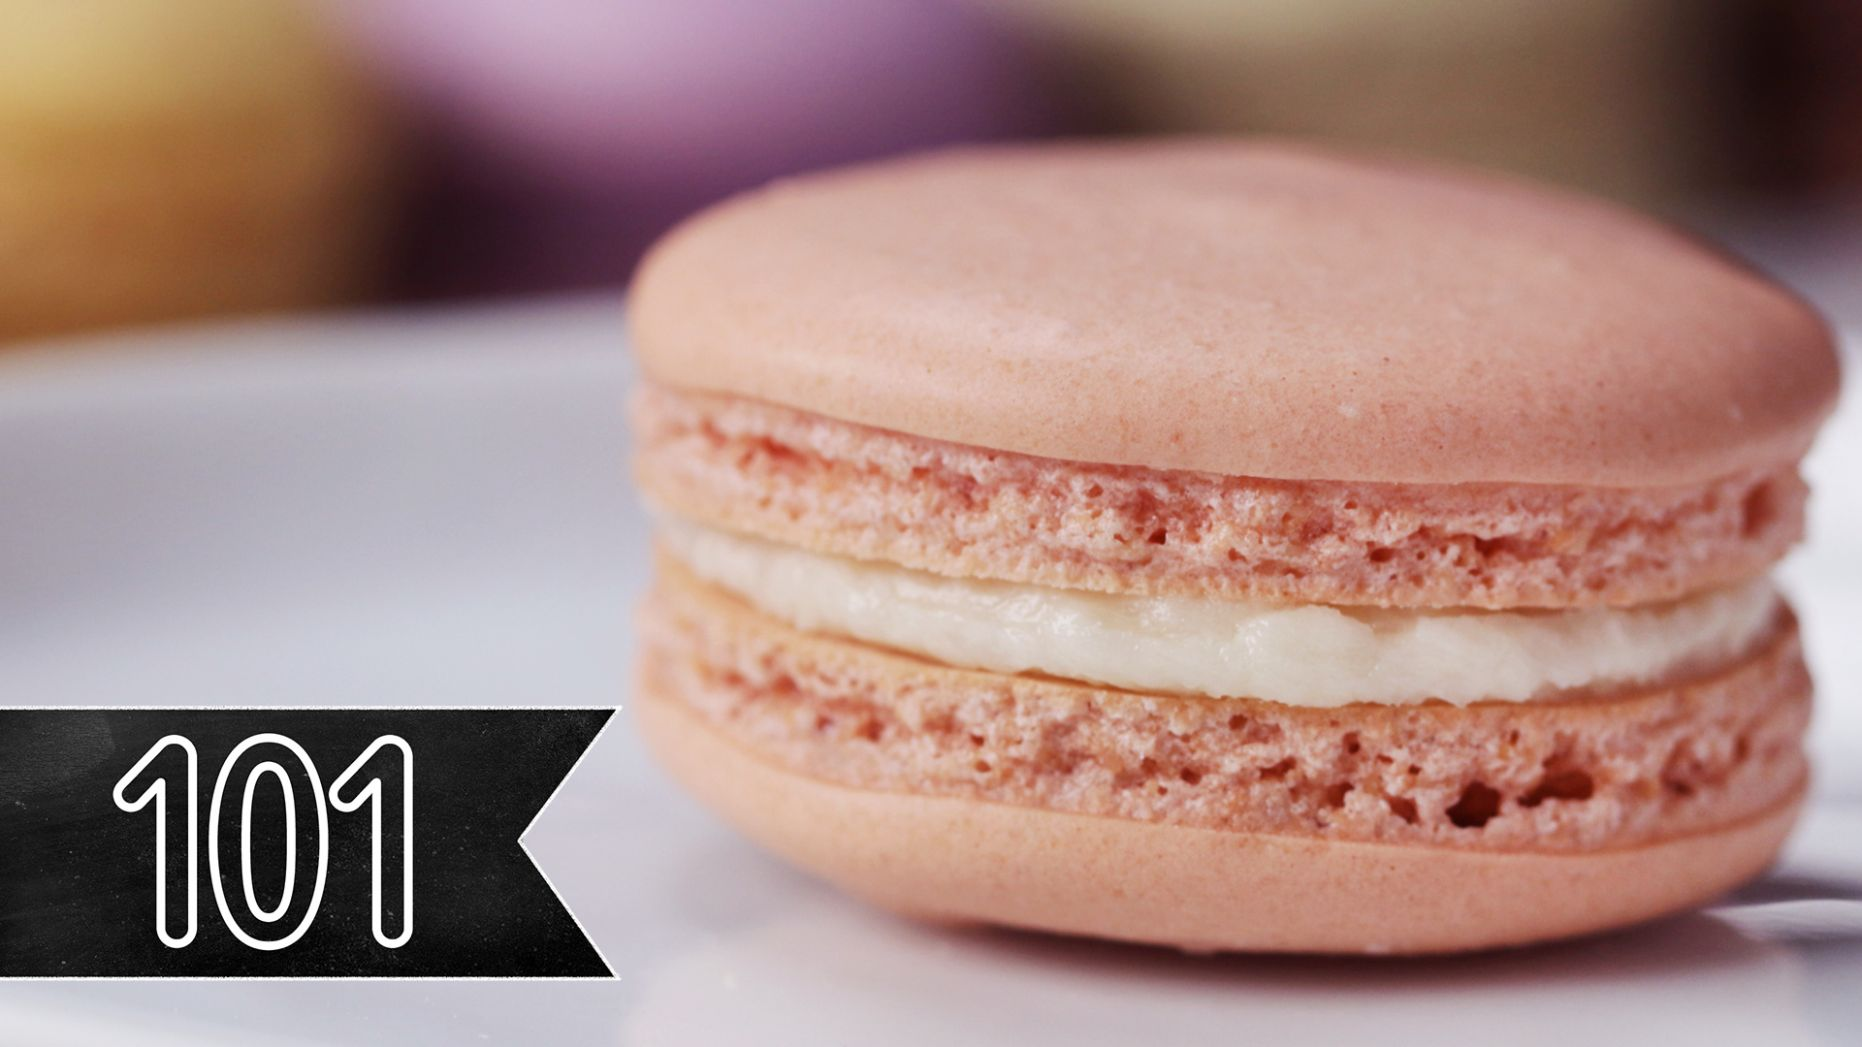 How To Make Macarons Recipe by Tasty - Cooking Recipes Vanilla